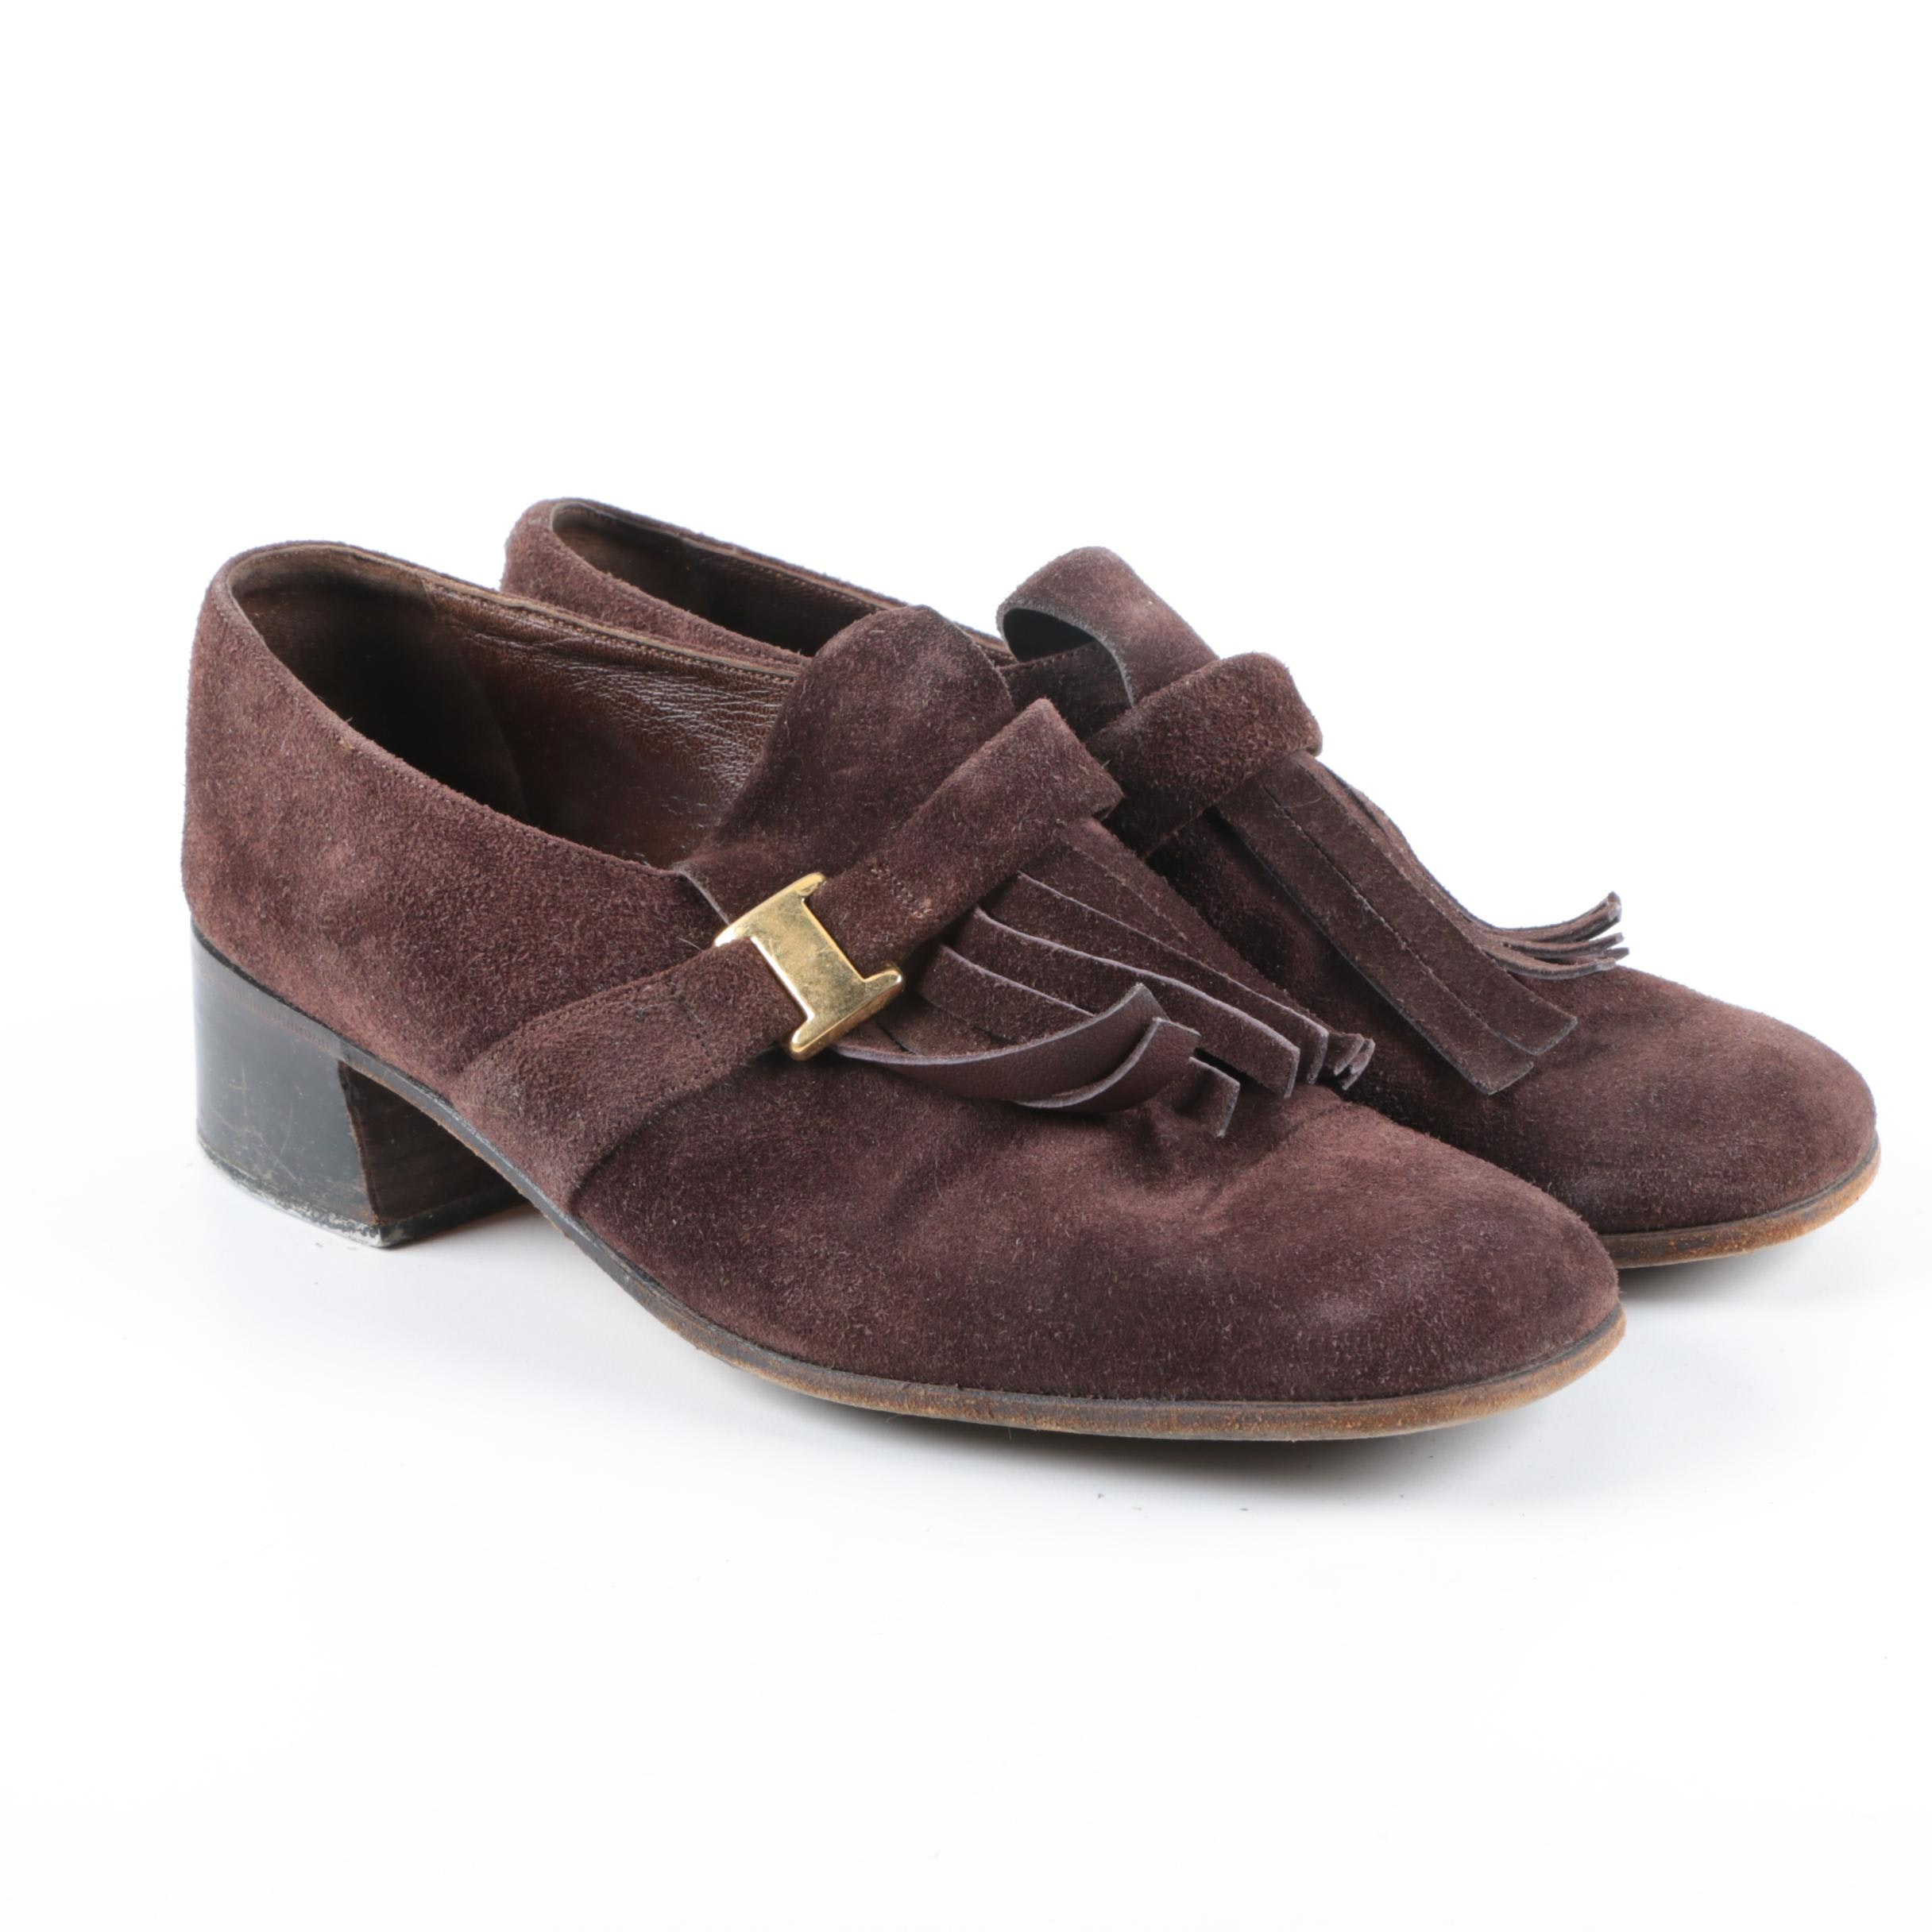 Vintage Bally Brown Suede Heeled Loafers